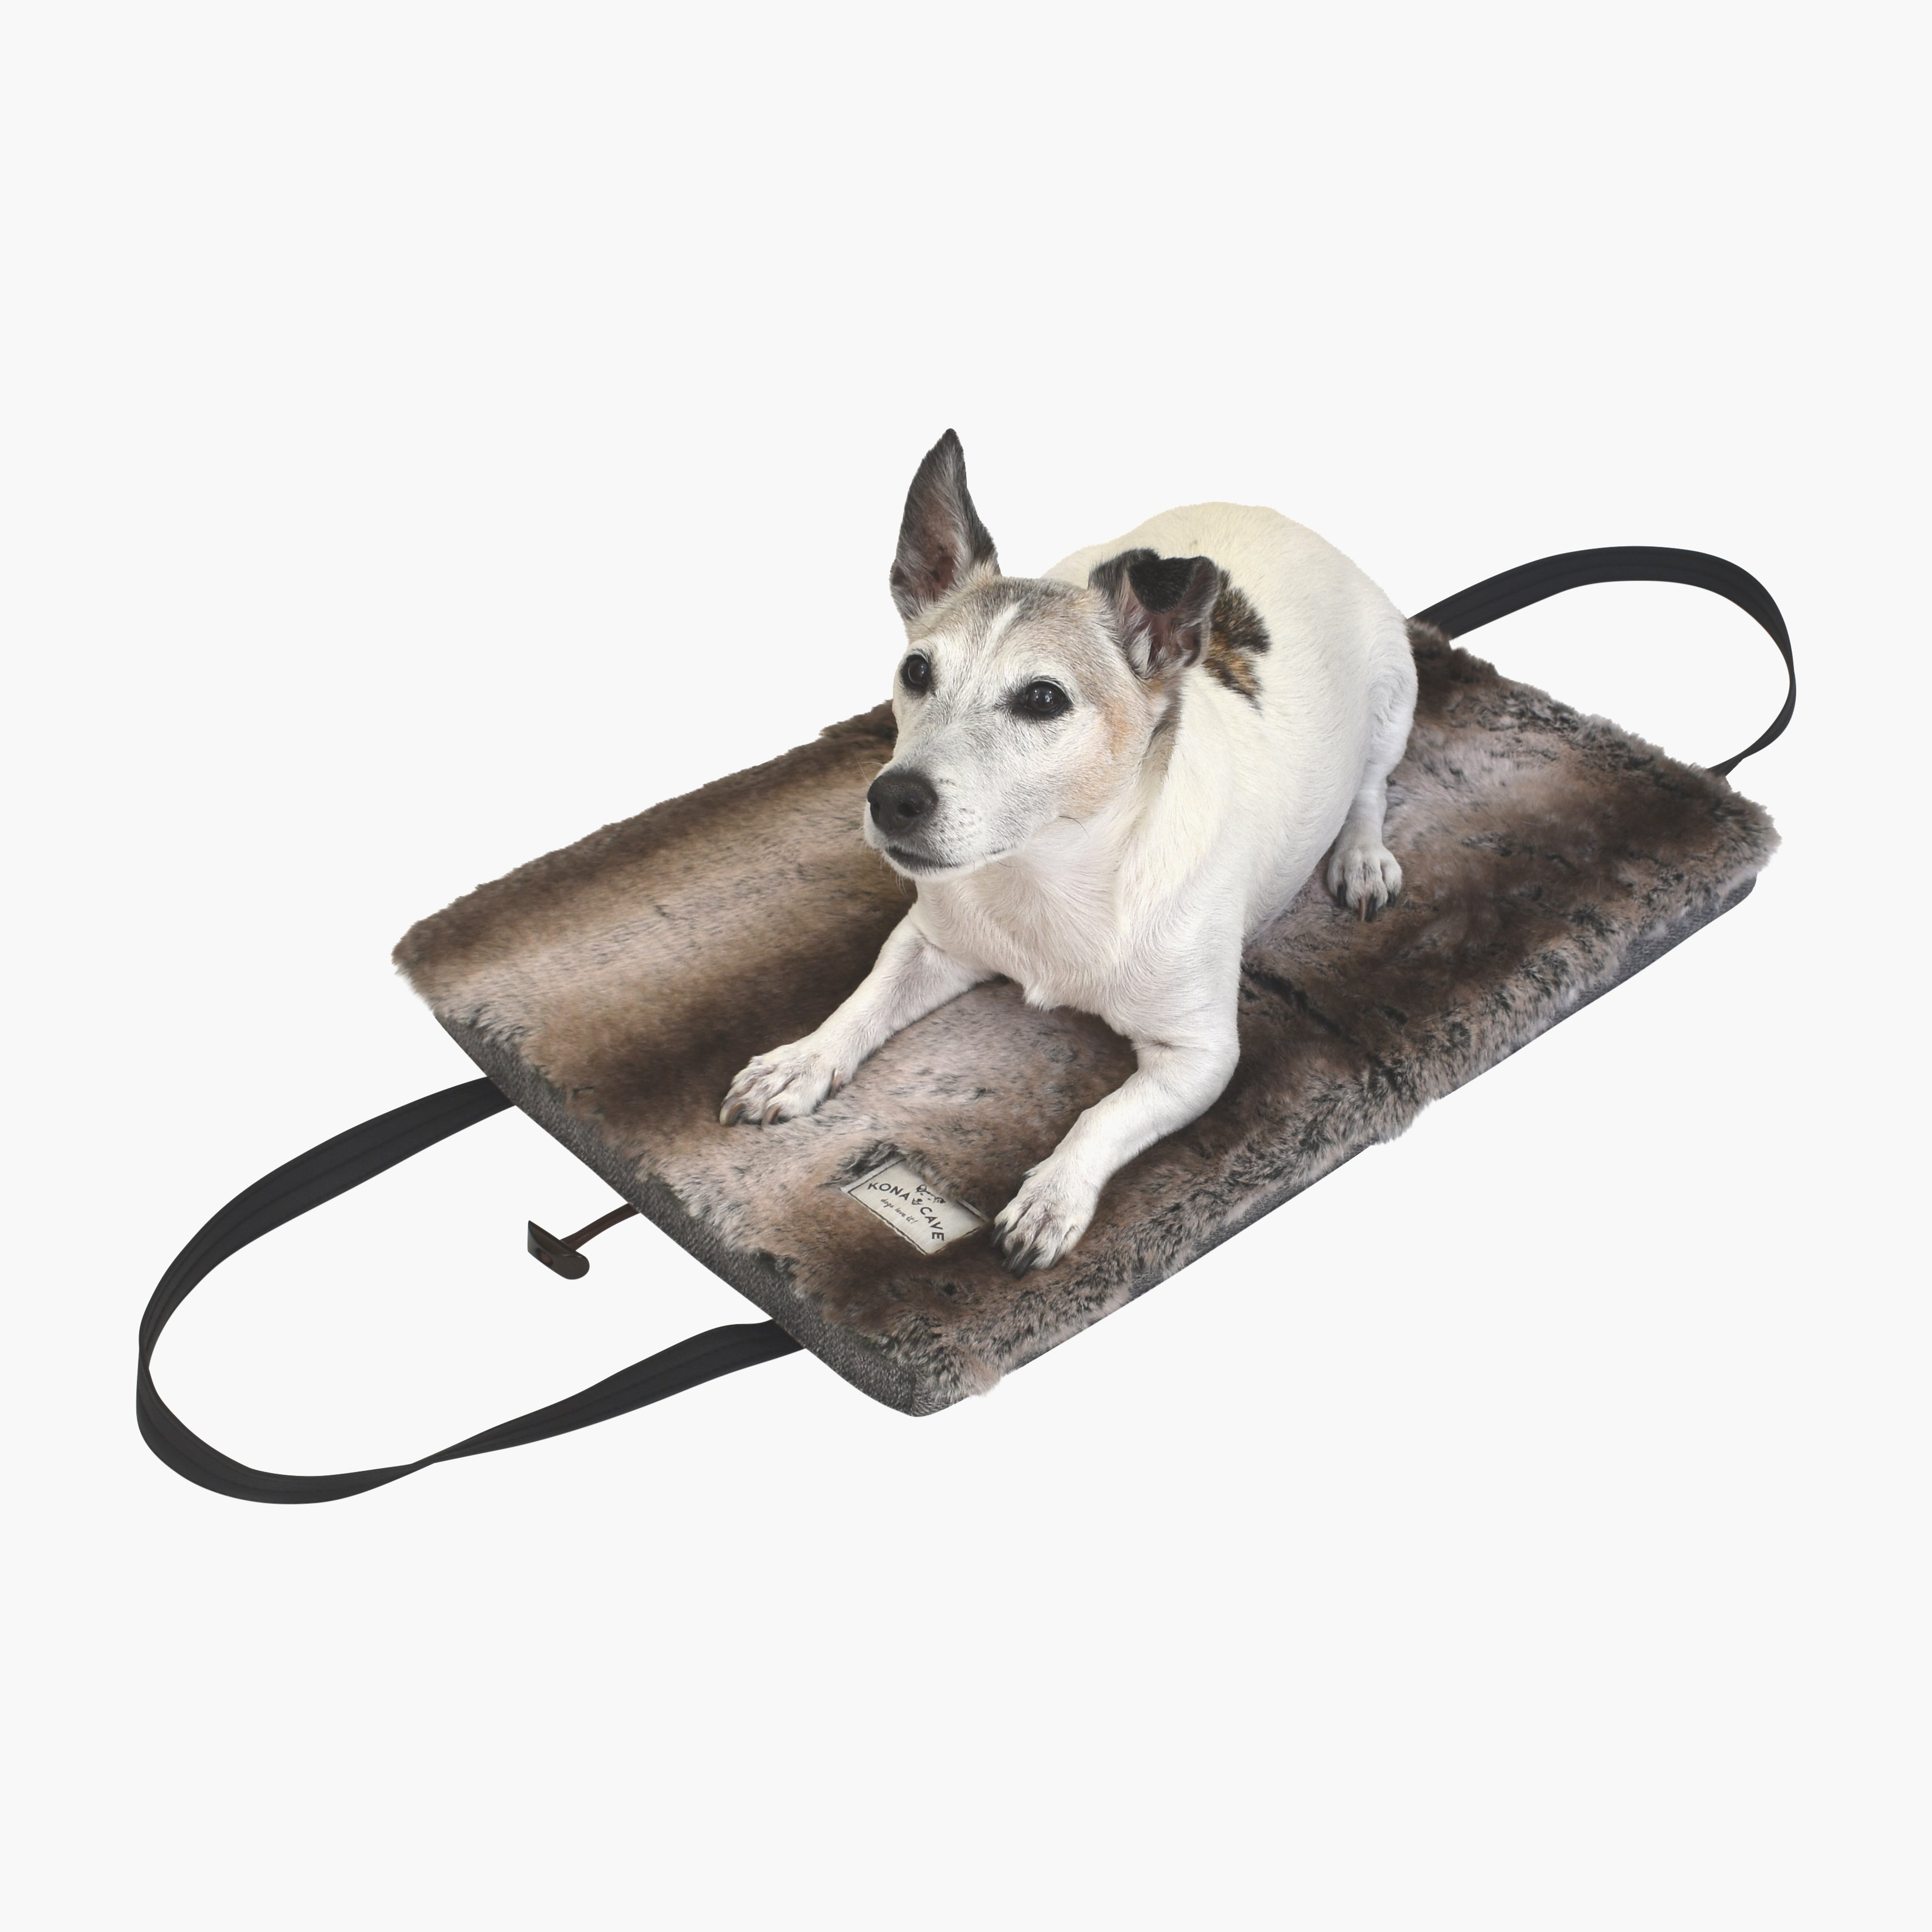 Travel Dog Bed >> Travel Dog Bed Limited Edition Oat Flannel With Luxury Faux Fur Lining